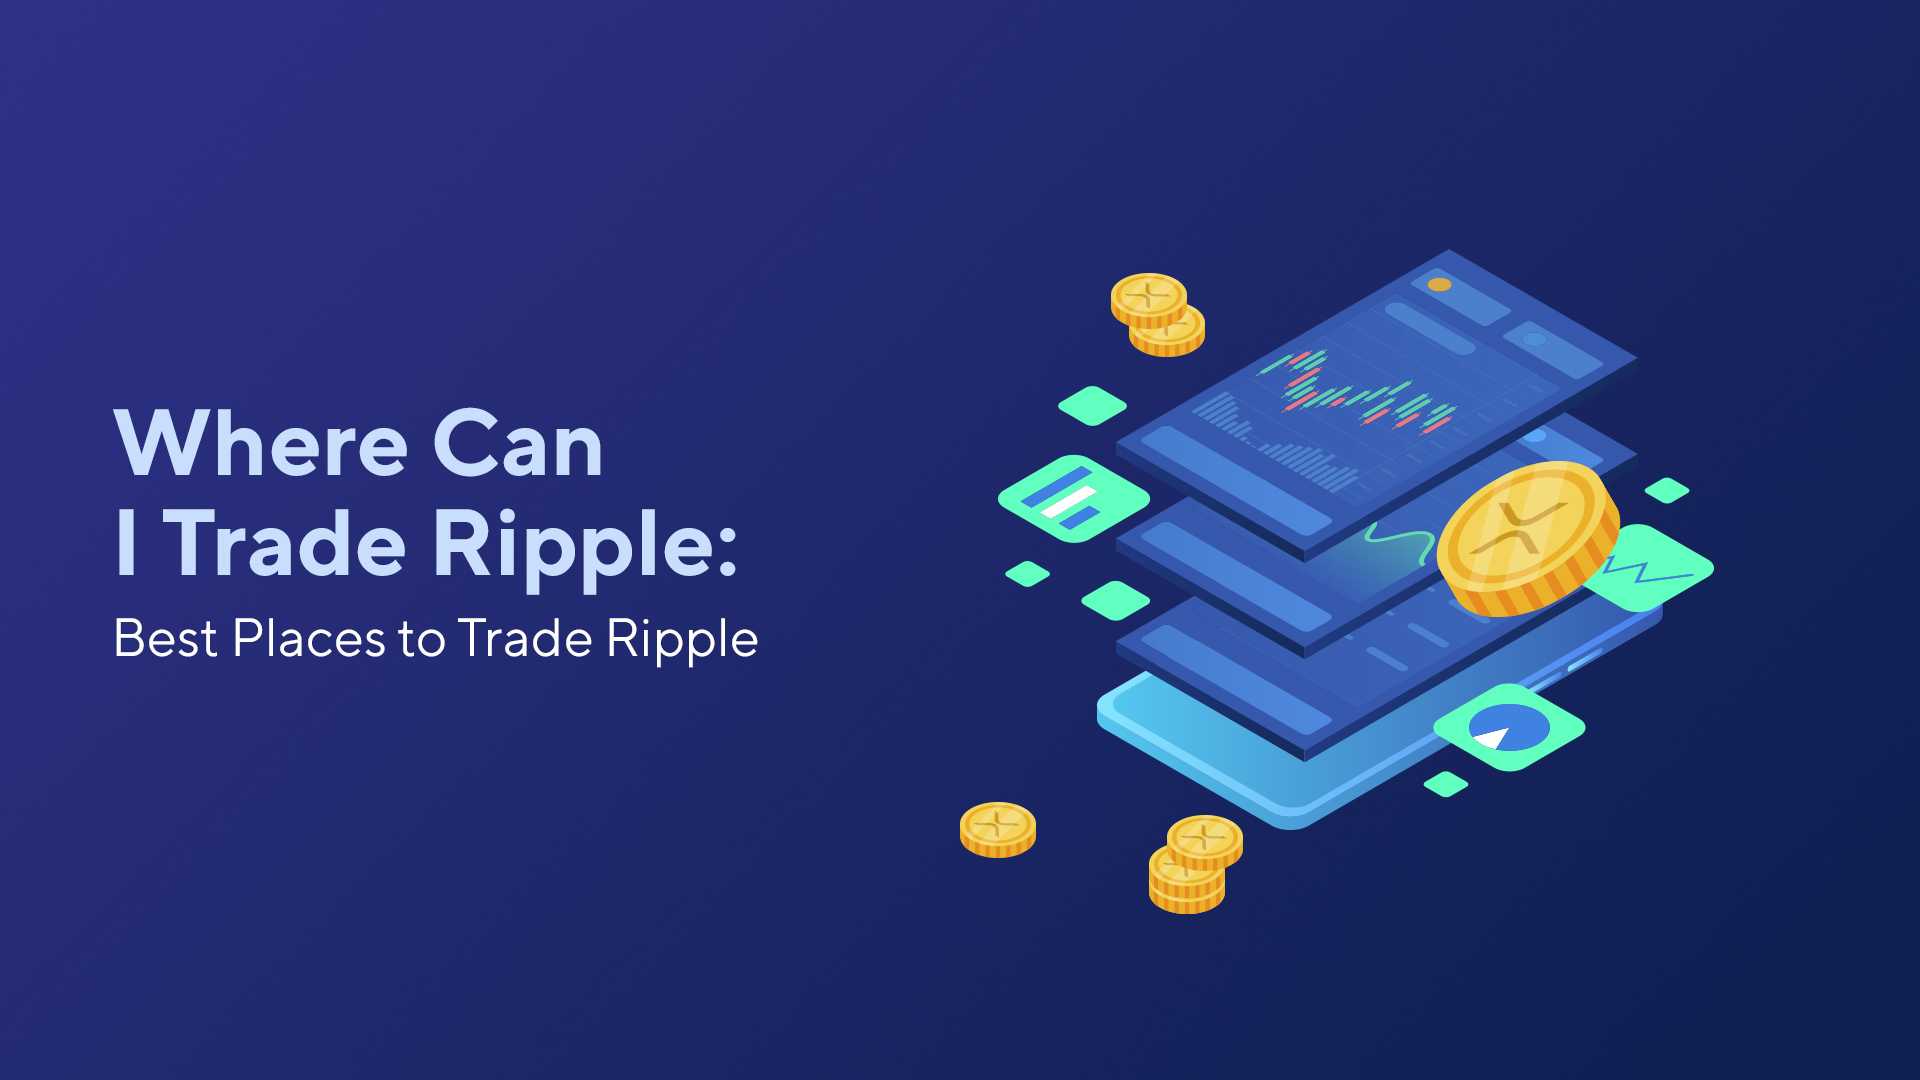 Where Can I Trade Ripple: Best Places to Trade Ripple